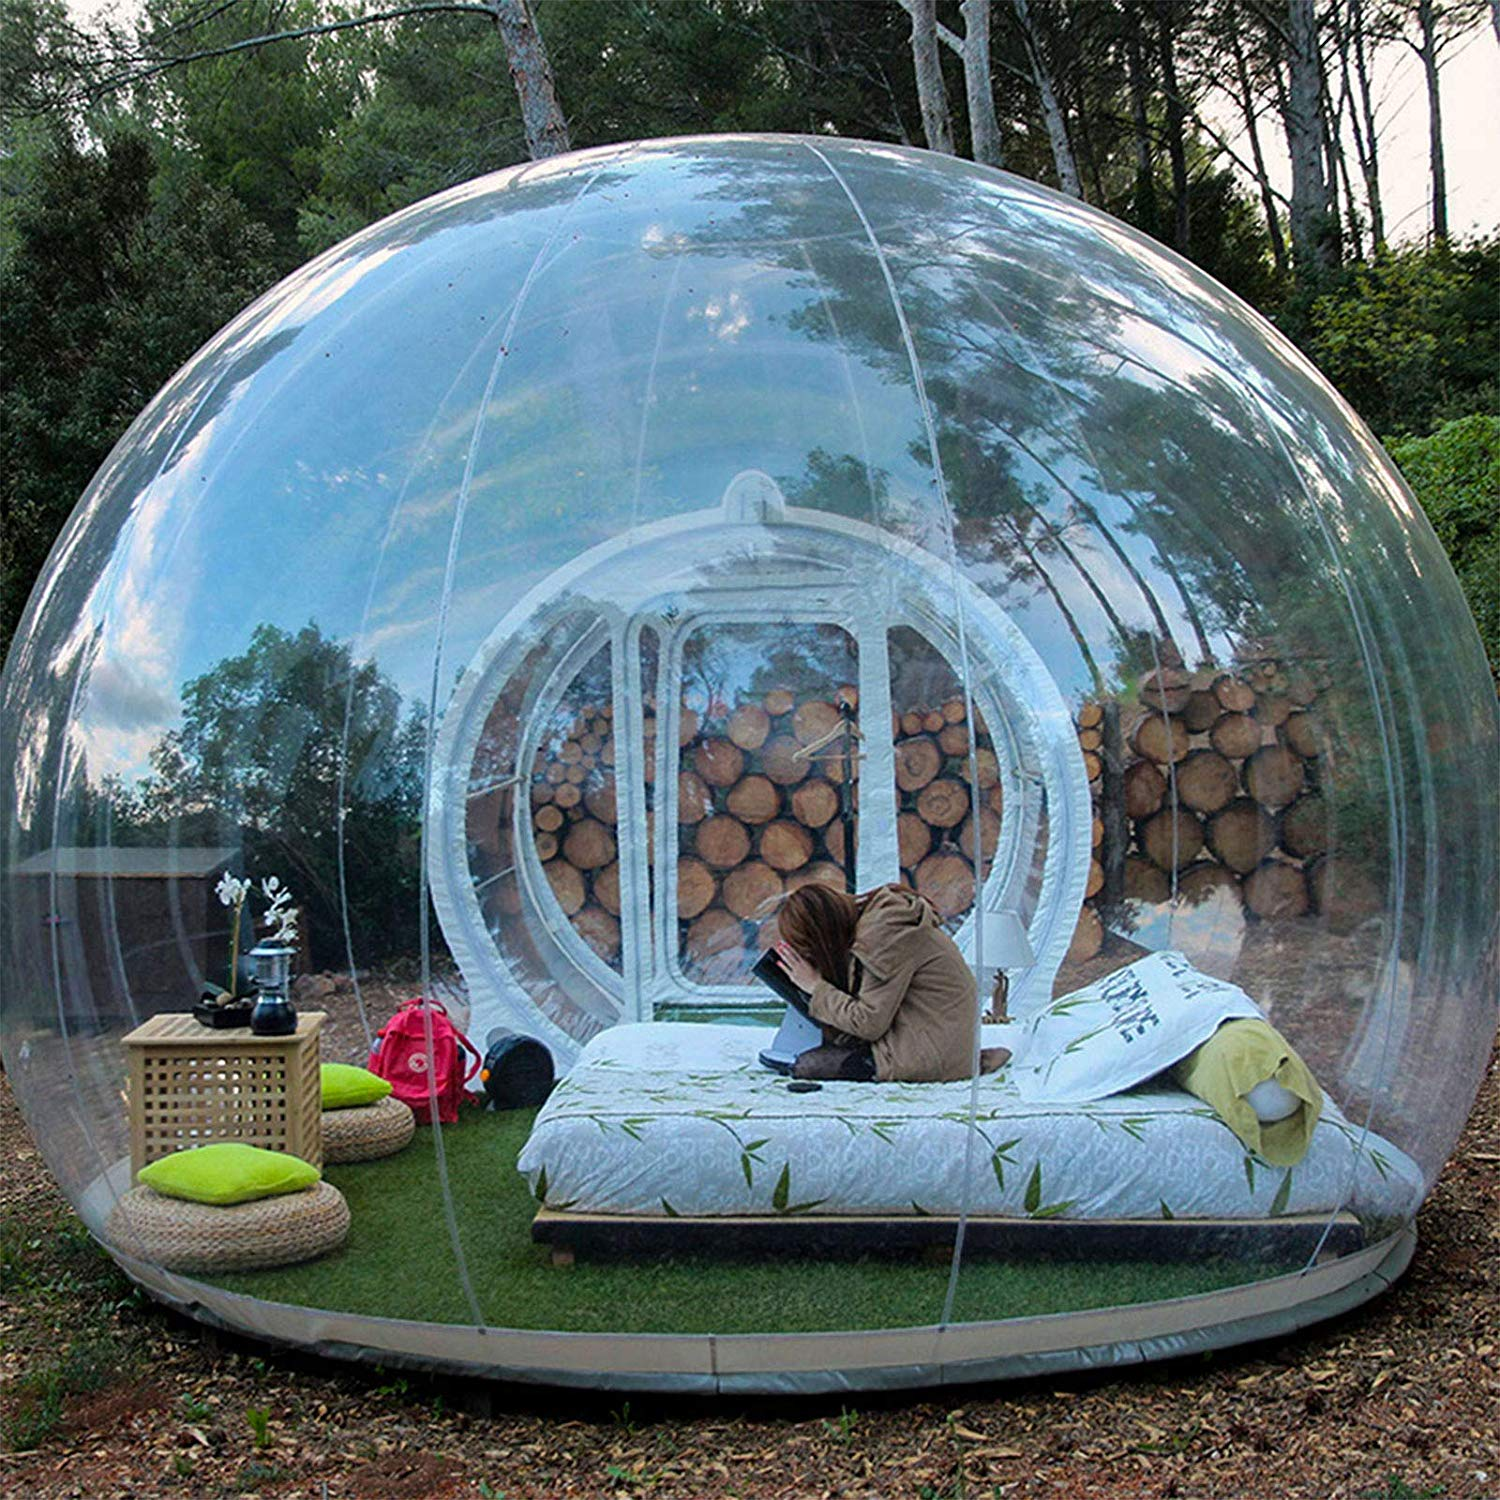 woman reads in a nicely furnished, clear inflatable bubble tent